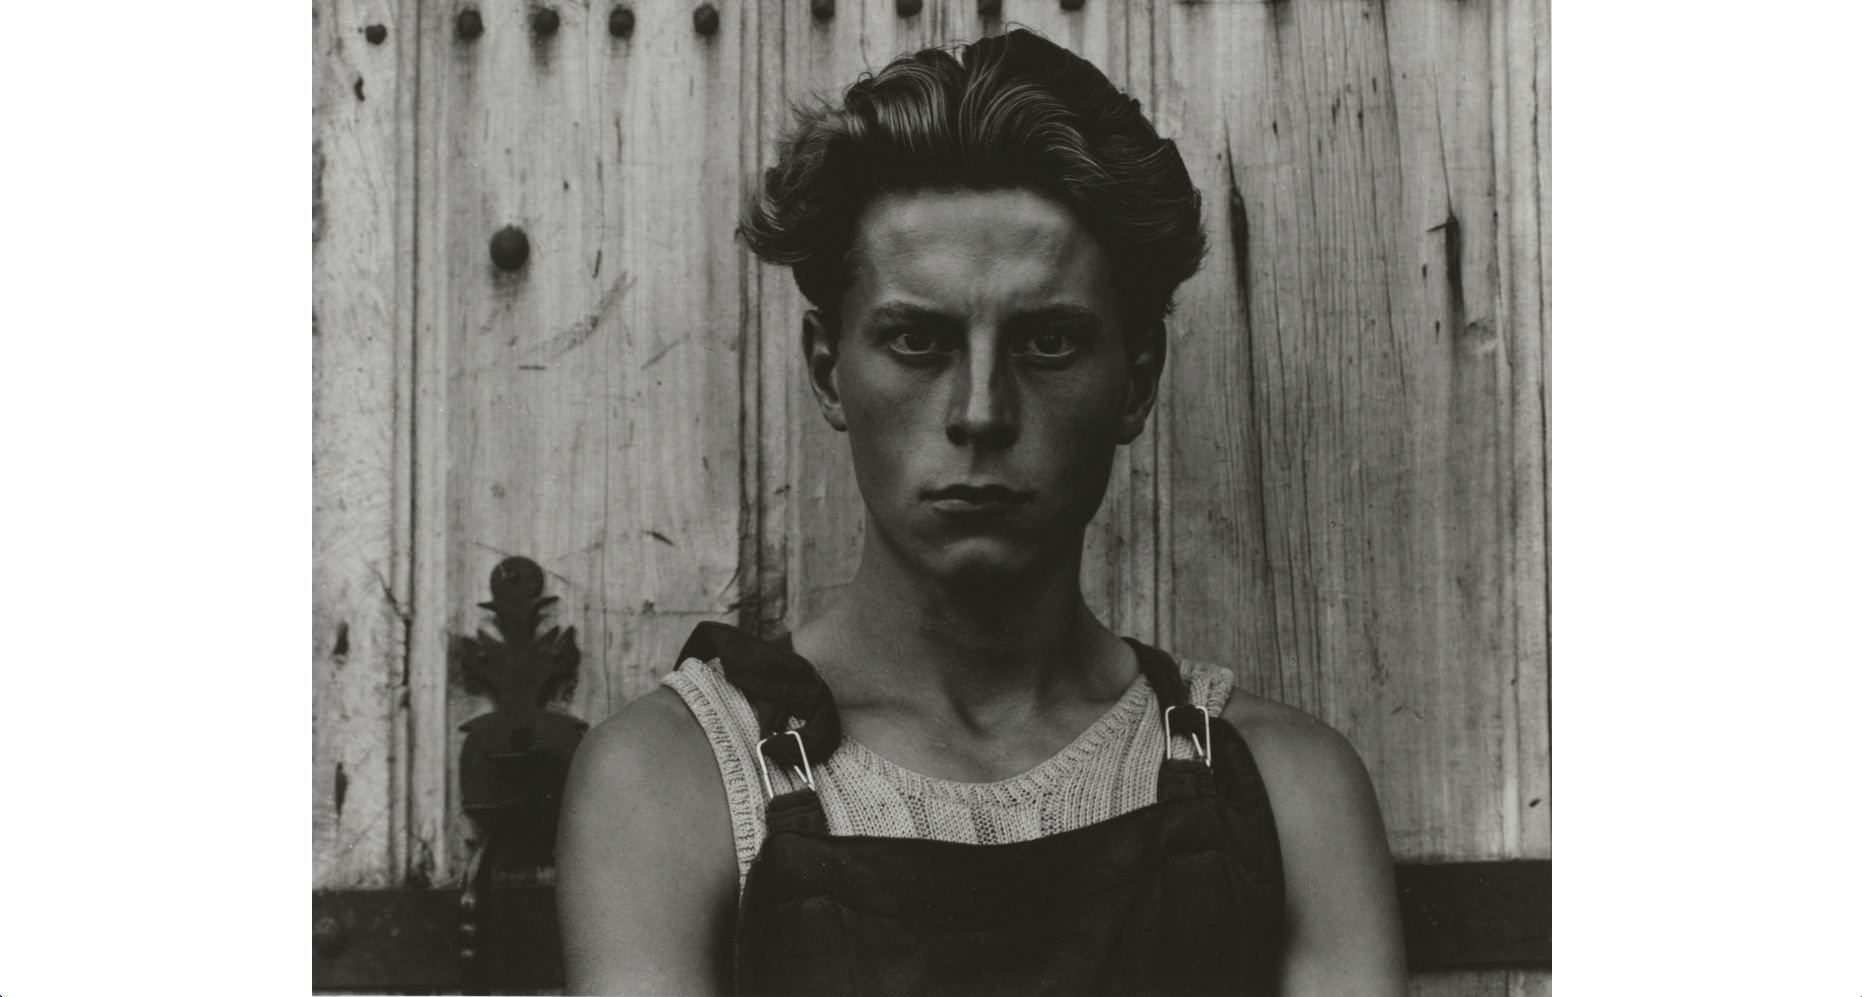 (Paul Strand: Young Boy, Gondeville, Charente, France, 1951. © Paul Strand Archive, Aperture Foundation)